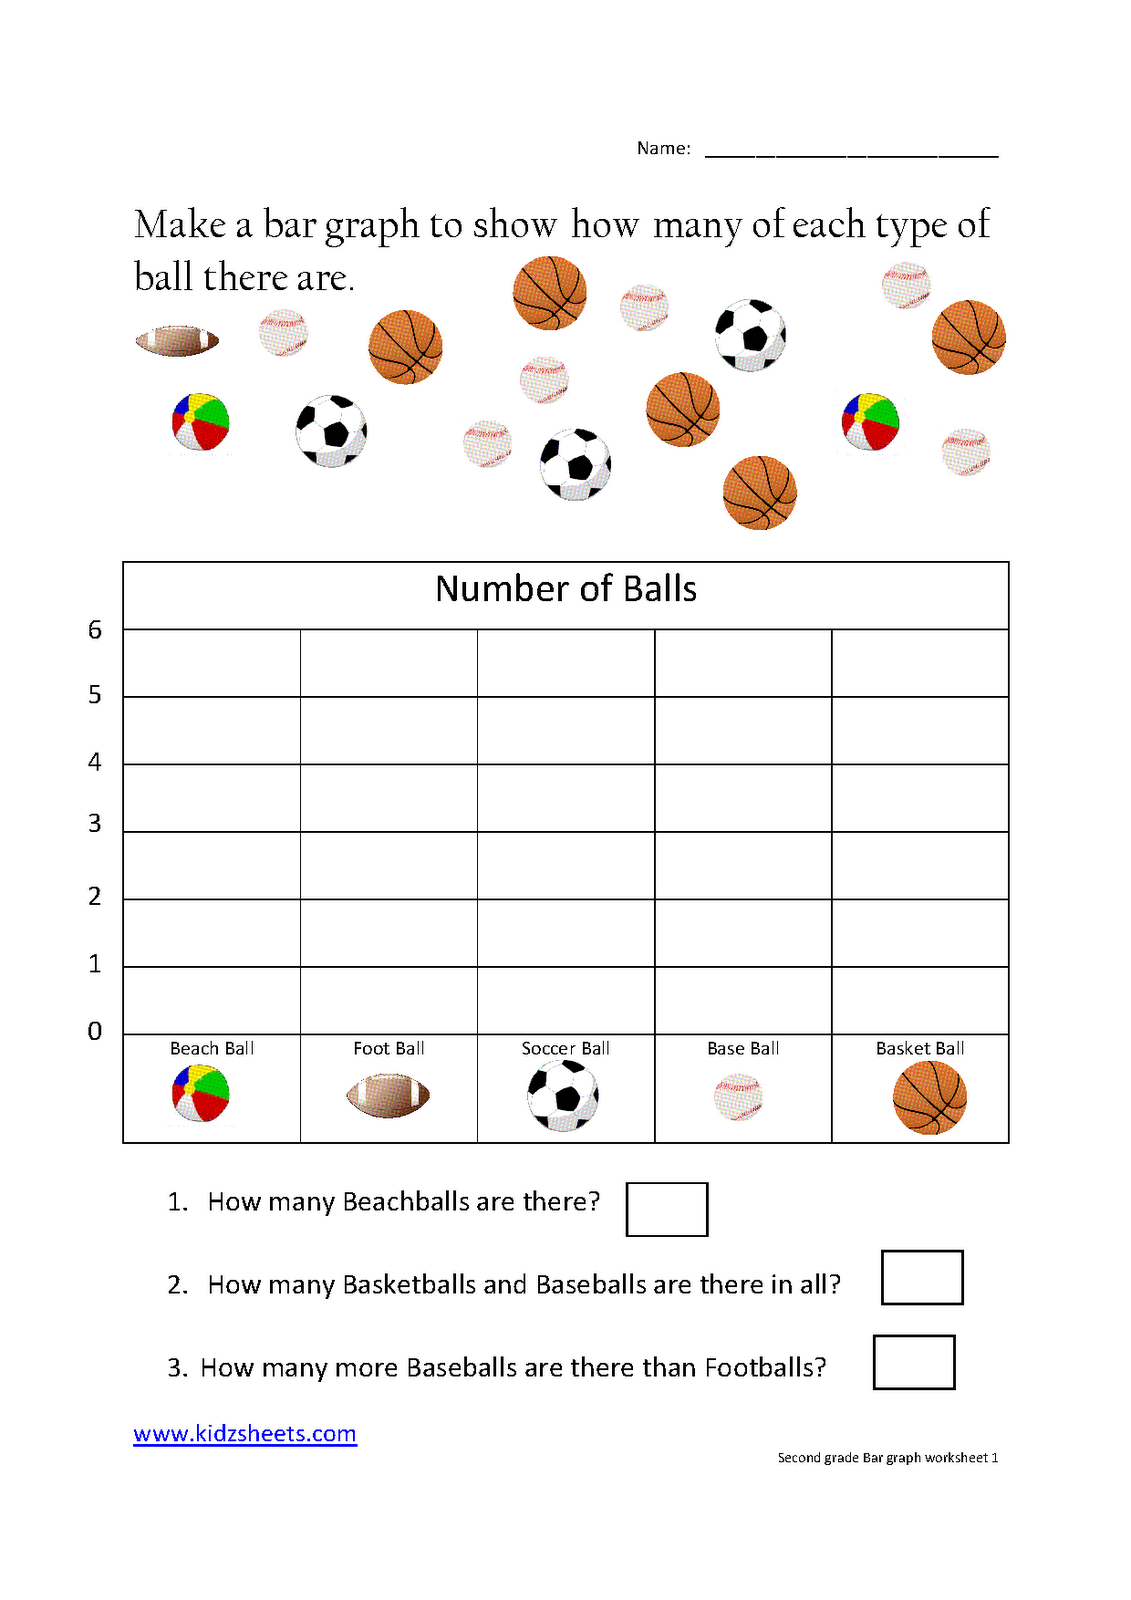 Free Worksheet Graphing Practice Worksheets free bar graph templates with and without a scale for variety of data graphing needs bargraphs bargraphtemplates pintere